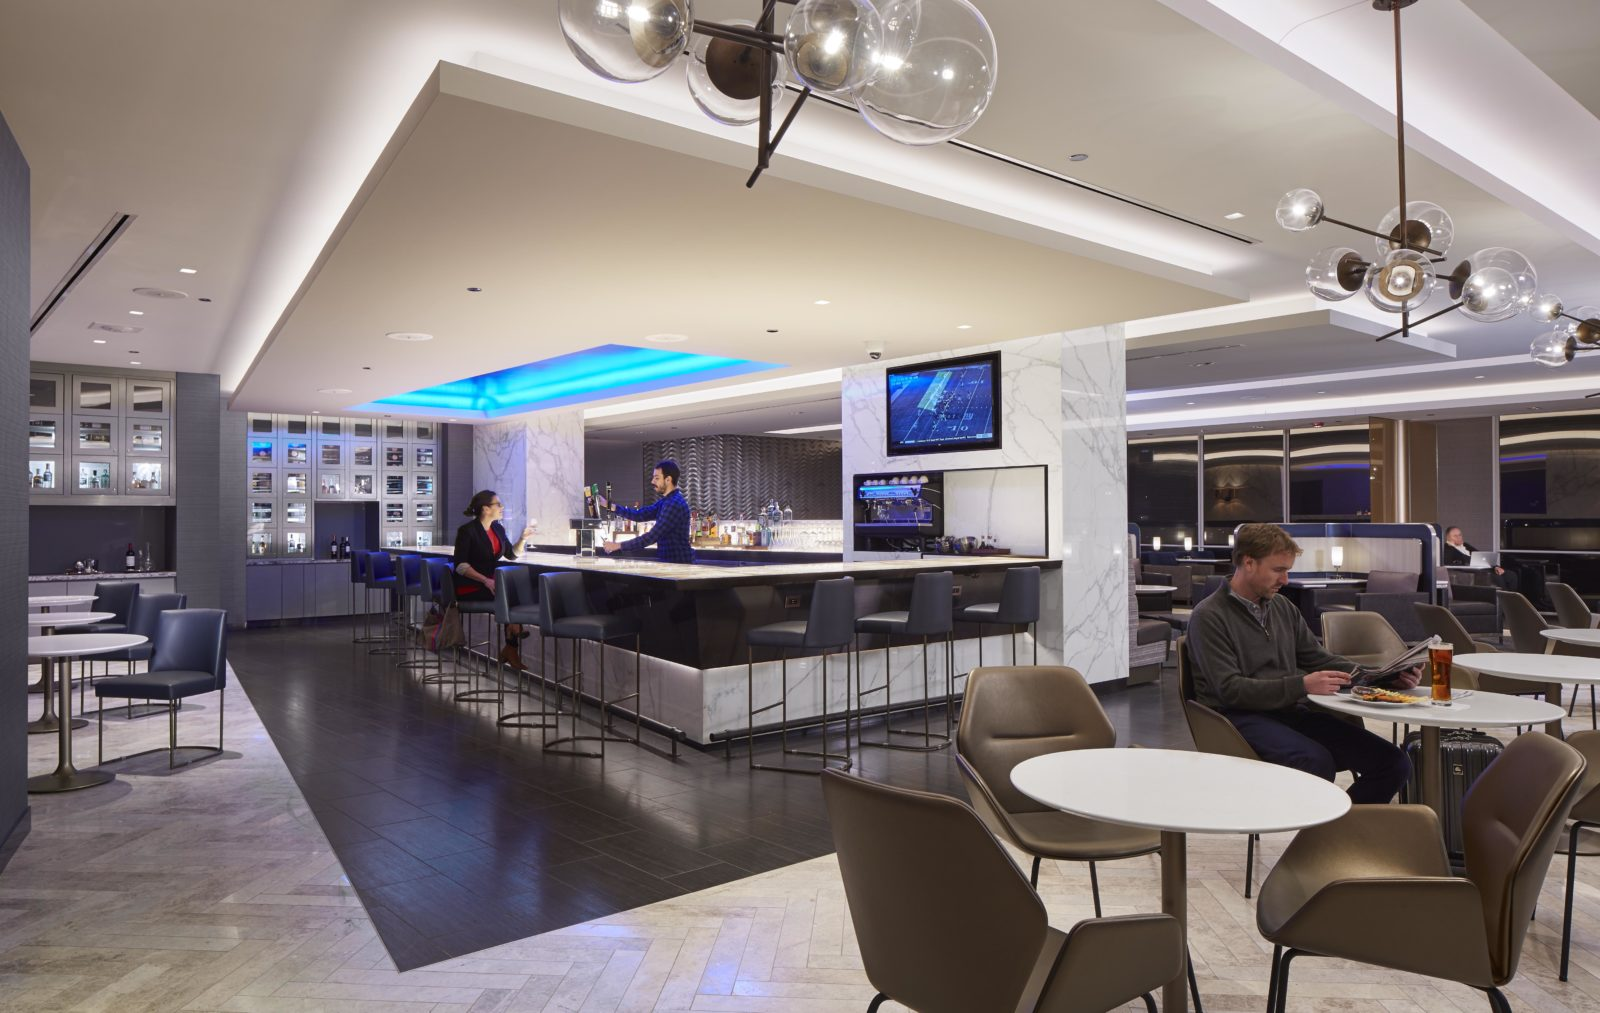 United Polaris Lounges: Taking Air Travel to Luxurious New Heights